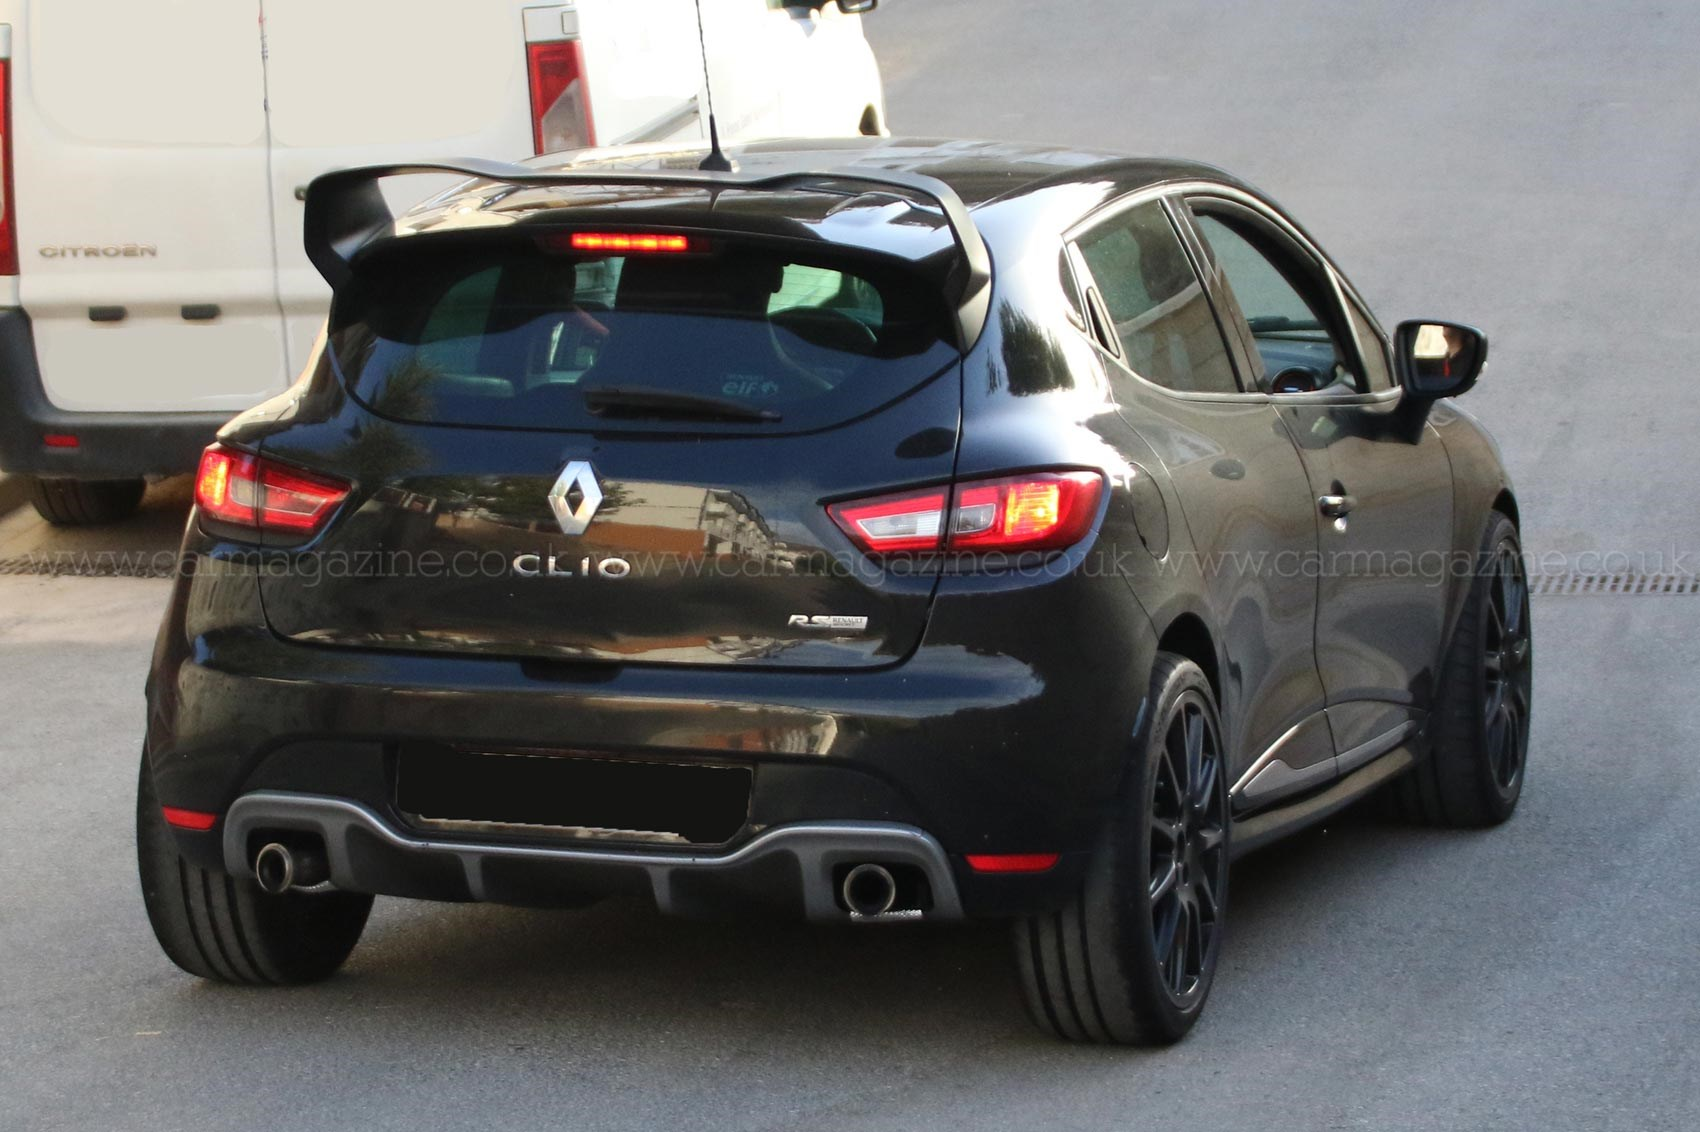 spyshots de la renault clio rs 16 production en vue. Black Bedroom Furniture Sets. Home Design Ideas